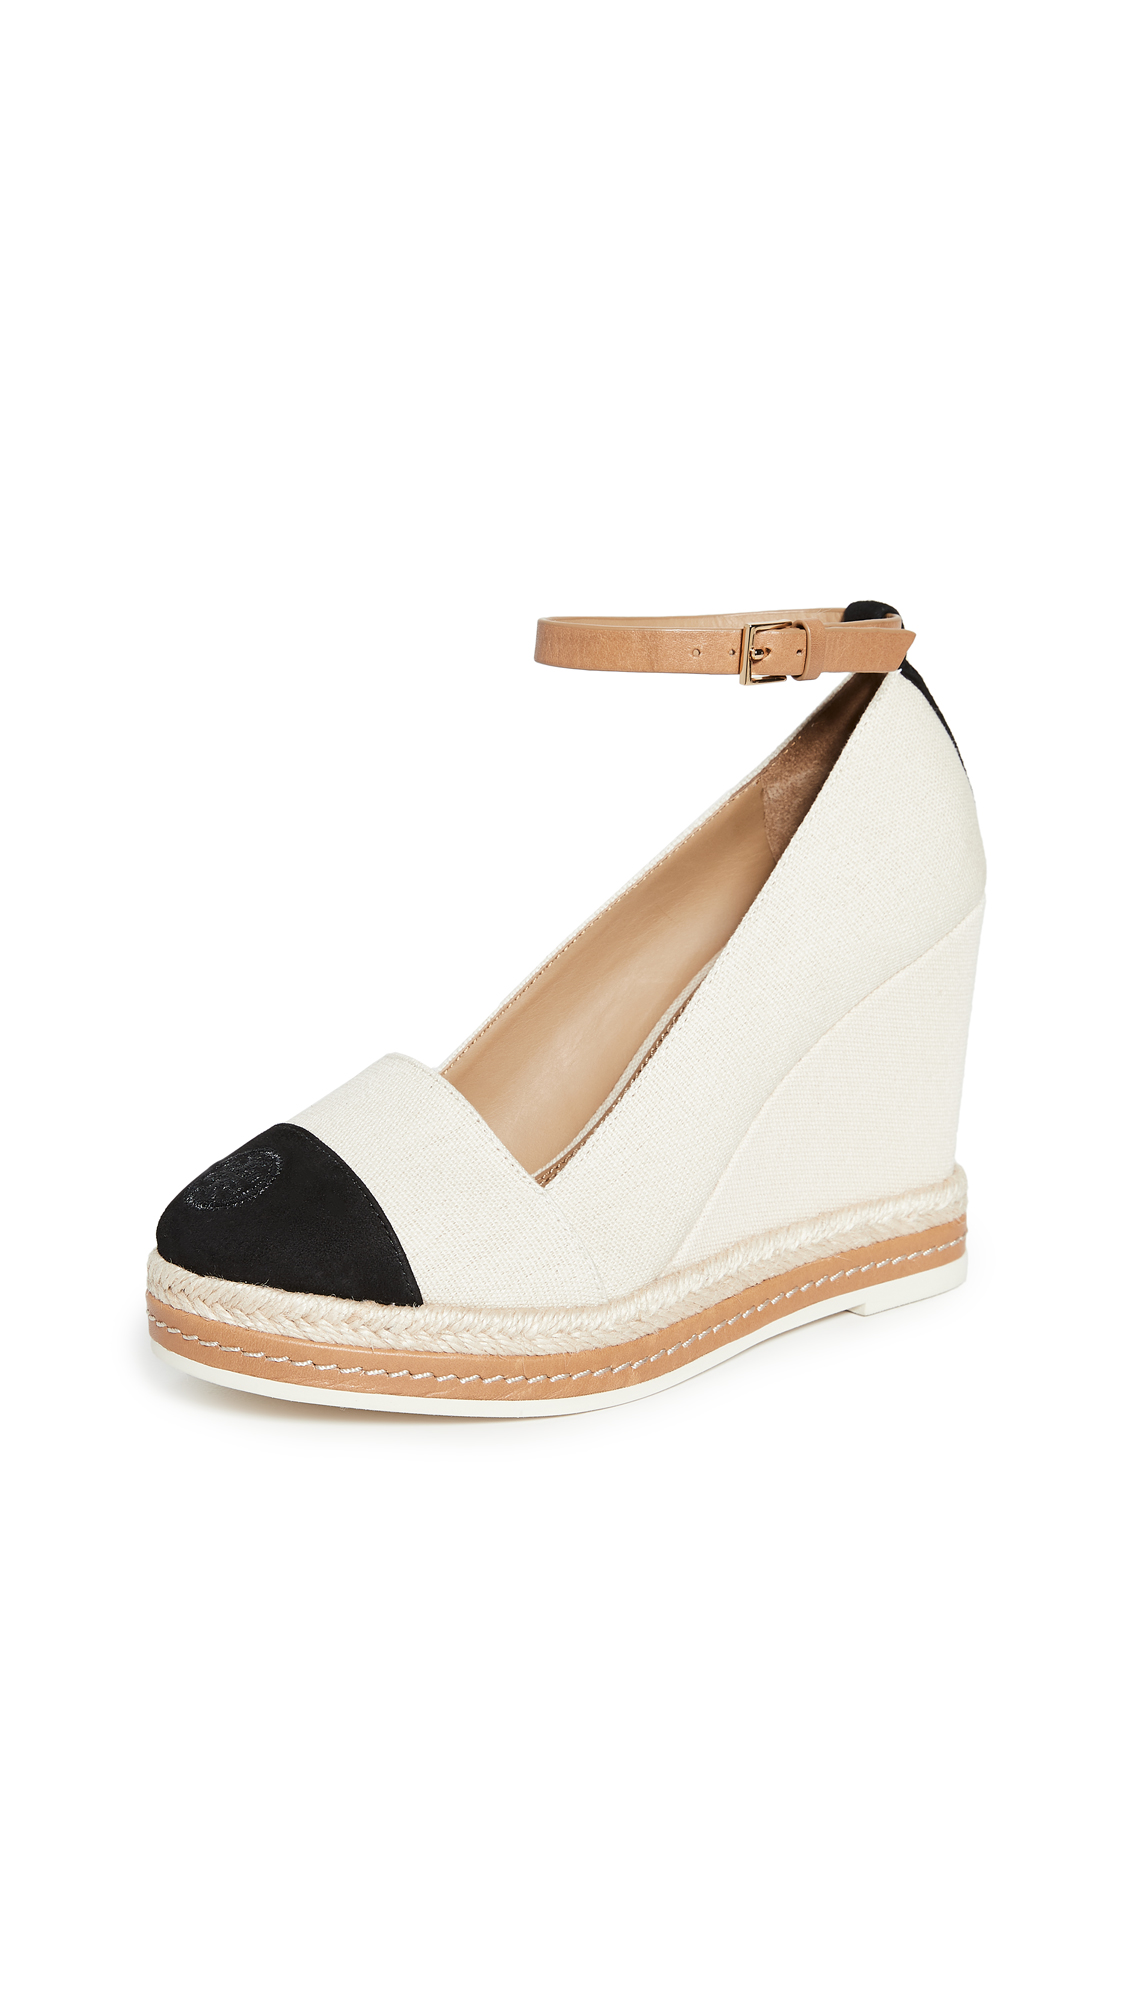 Buy Tory Burch online - photo of Tory Burch Colorblock Wedge Espadrilles 105mm